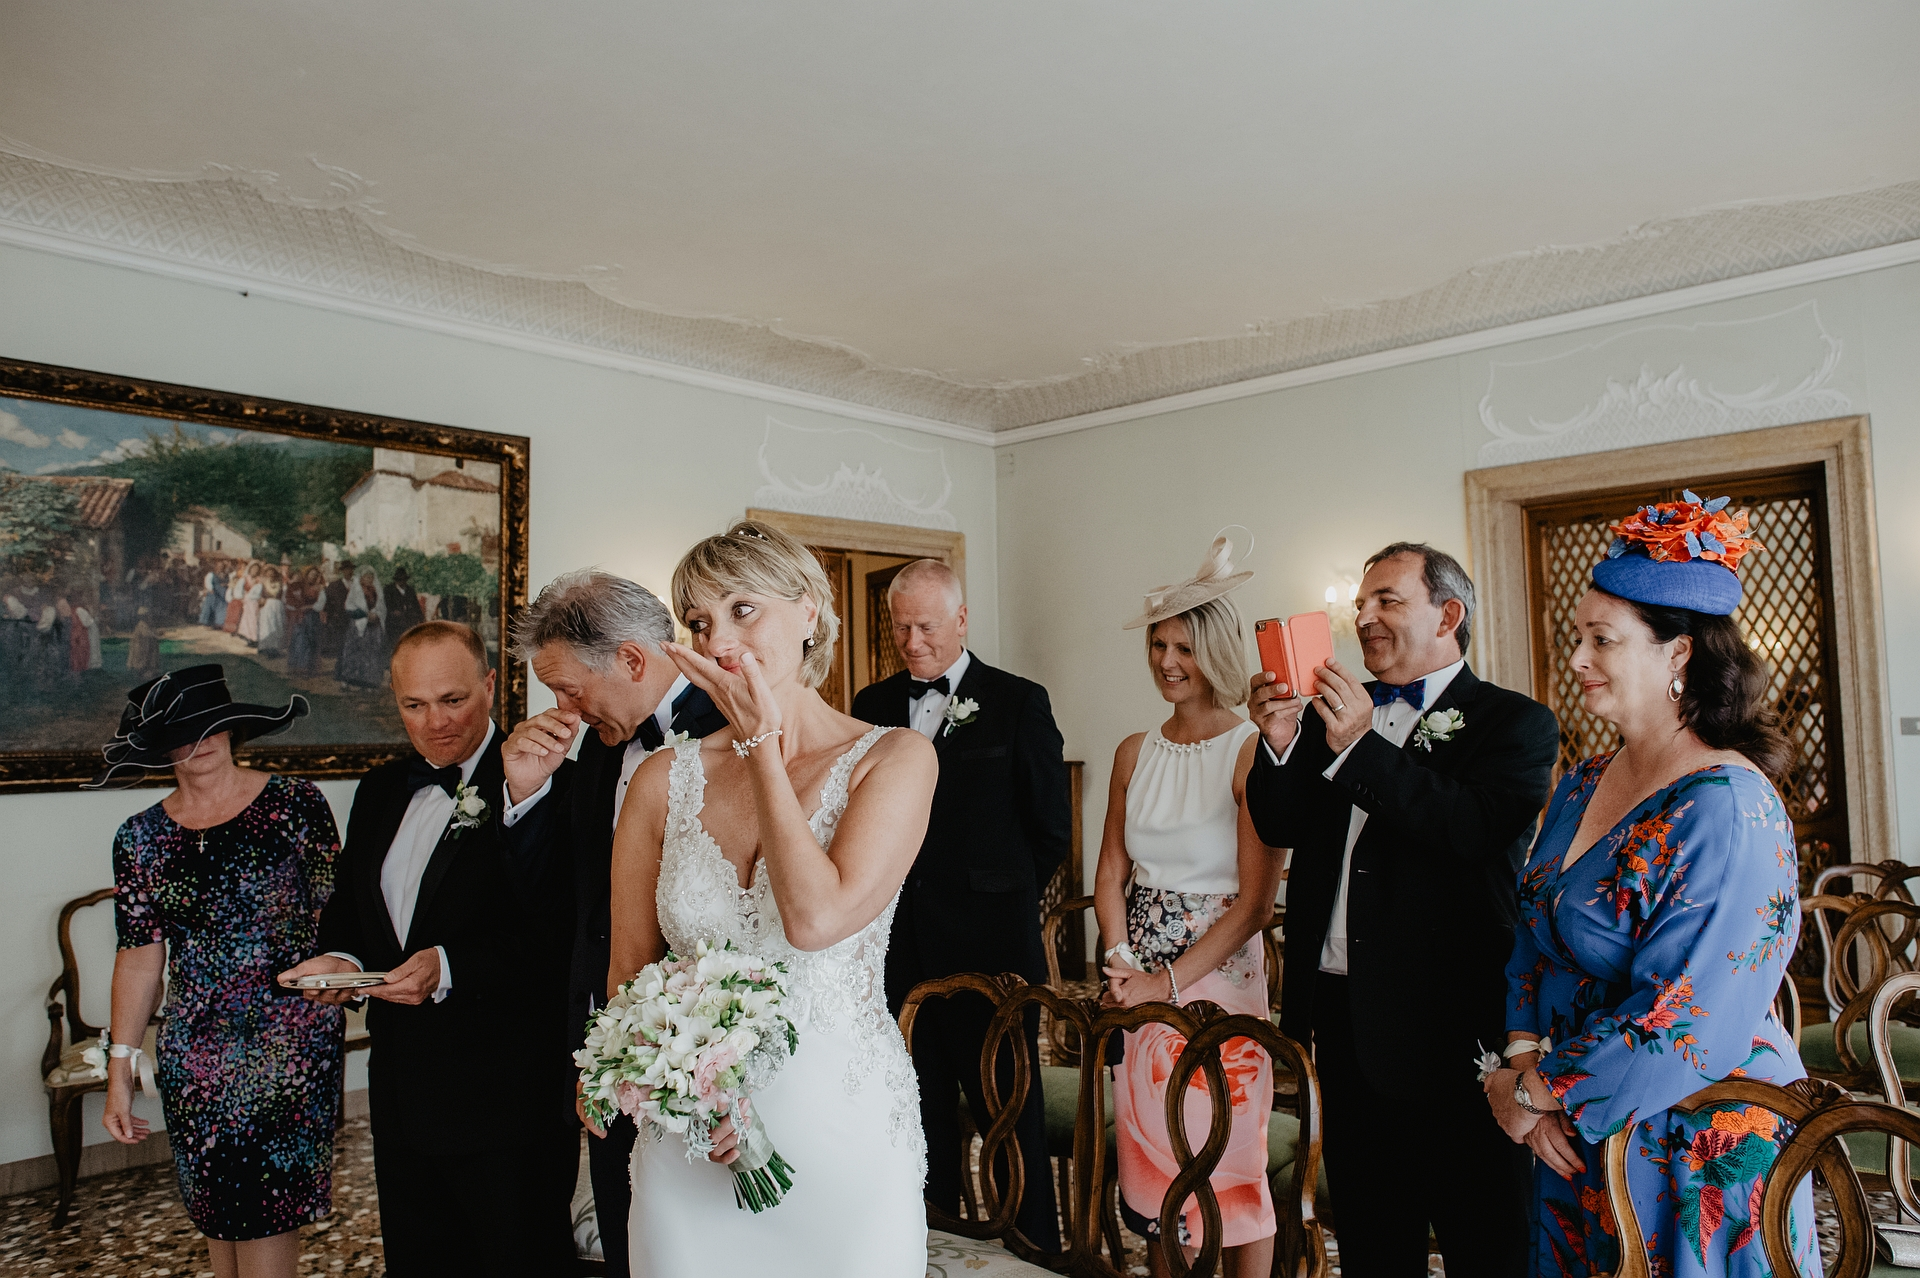 Italy Elopement Ceremony Picture from Venice Town Hall | The bride has entered the room, and the future spouses cannot hold back the very strong emotions